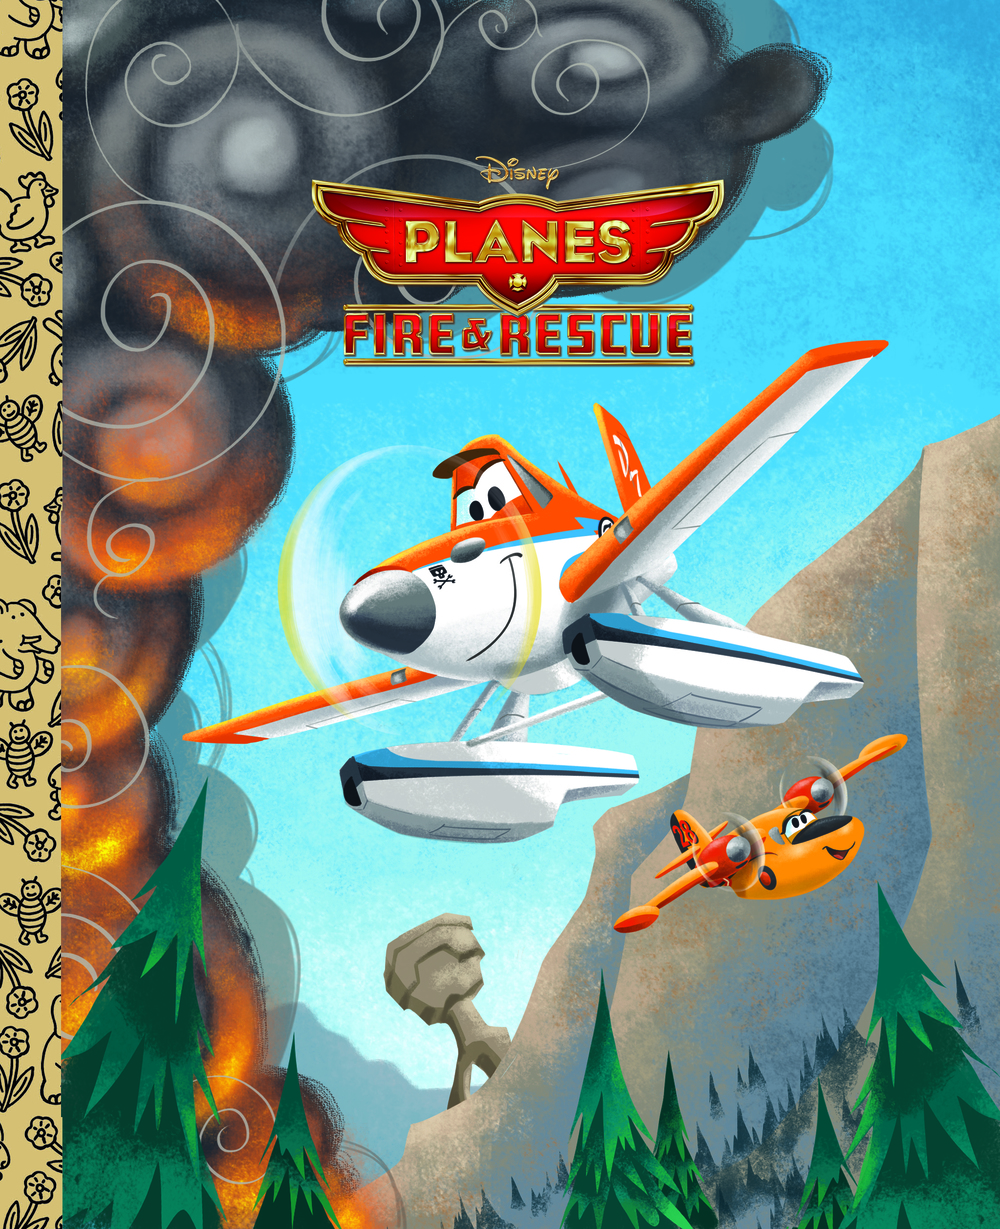 Planes: Fire & Rescue Little Golden Book